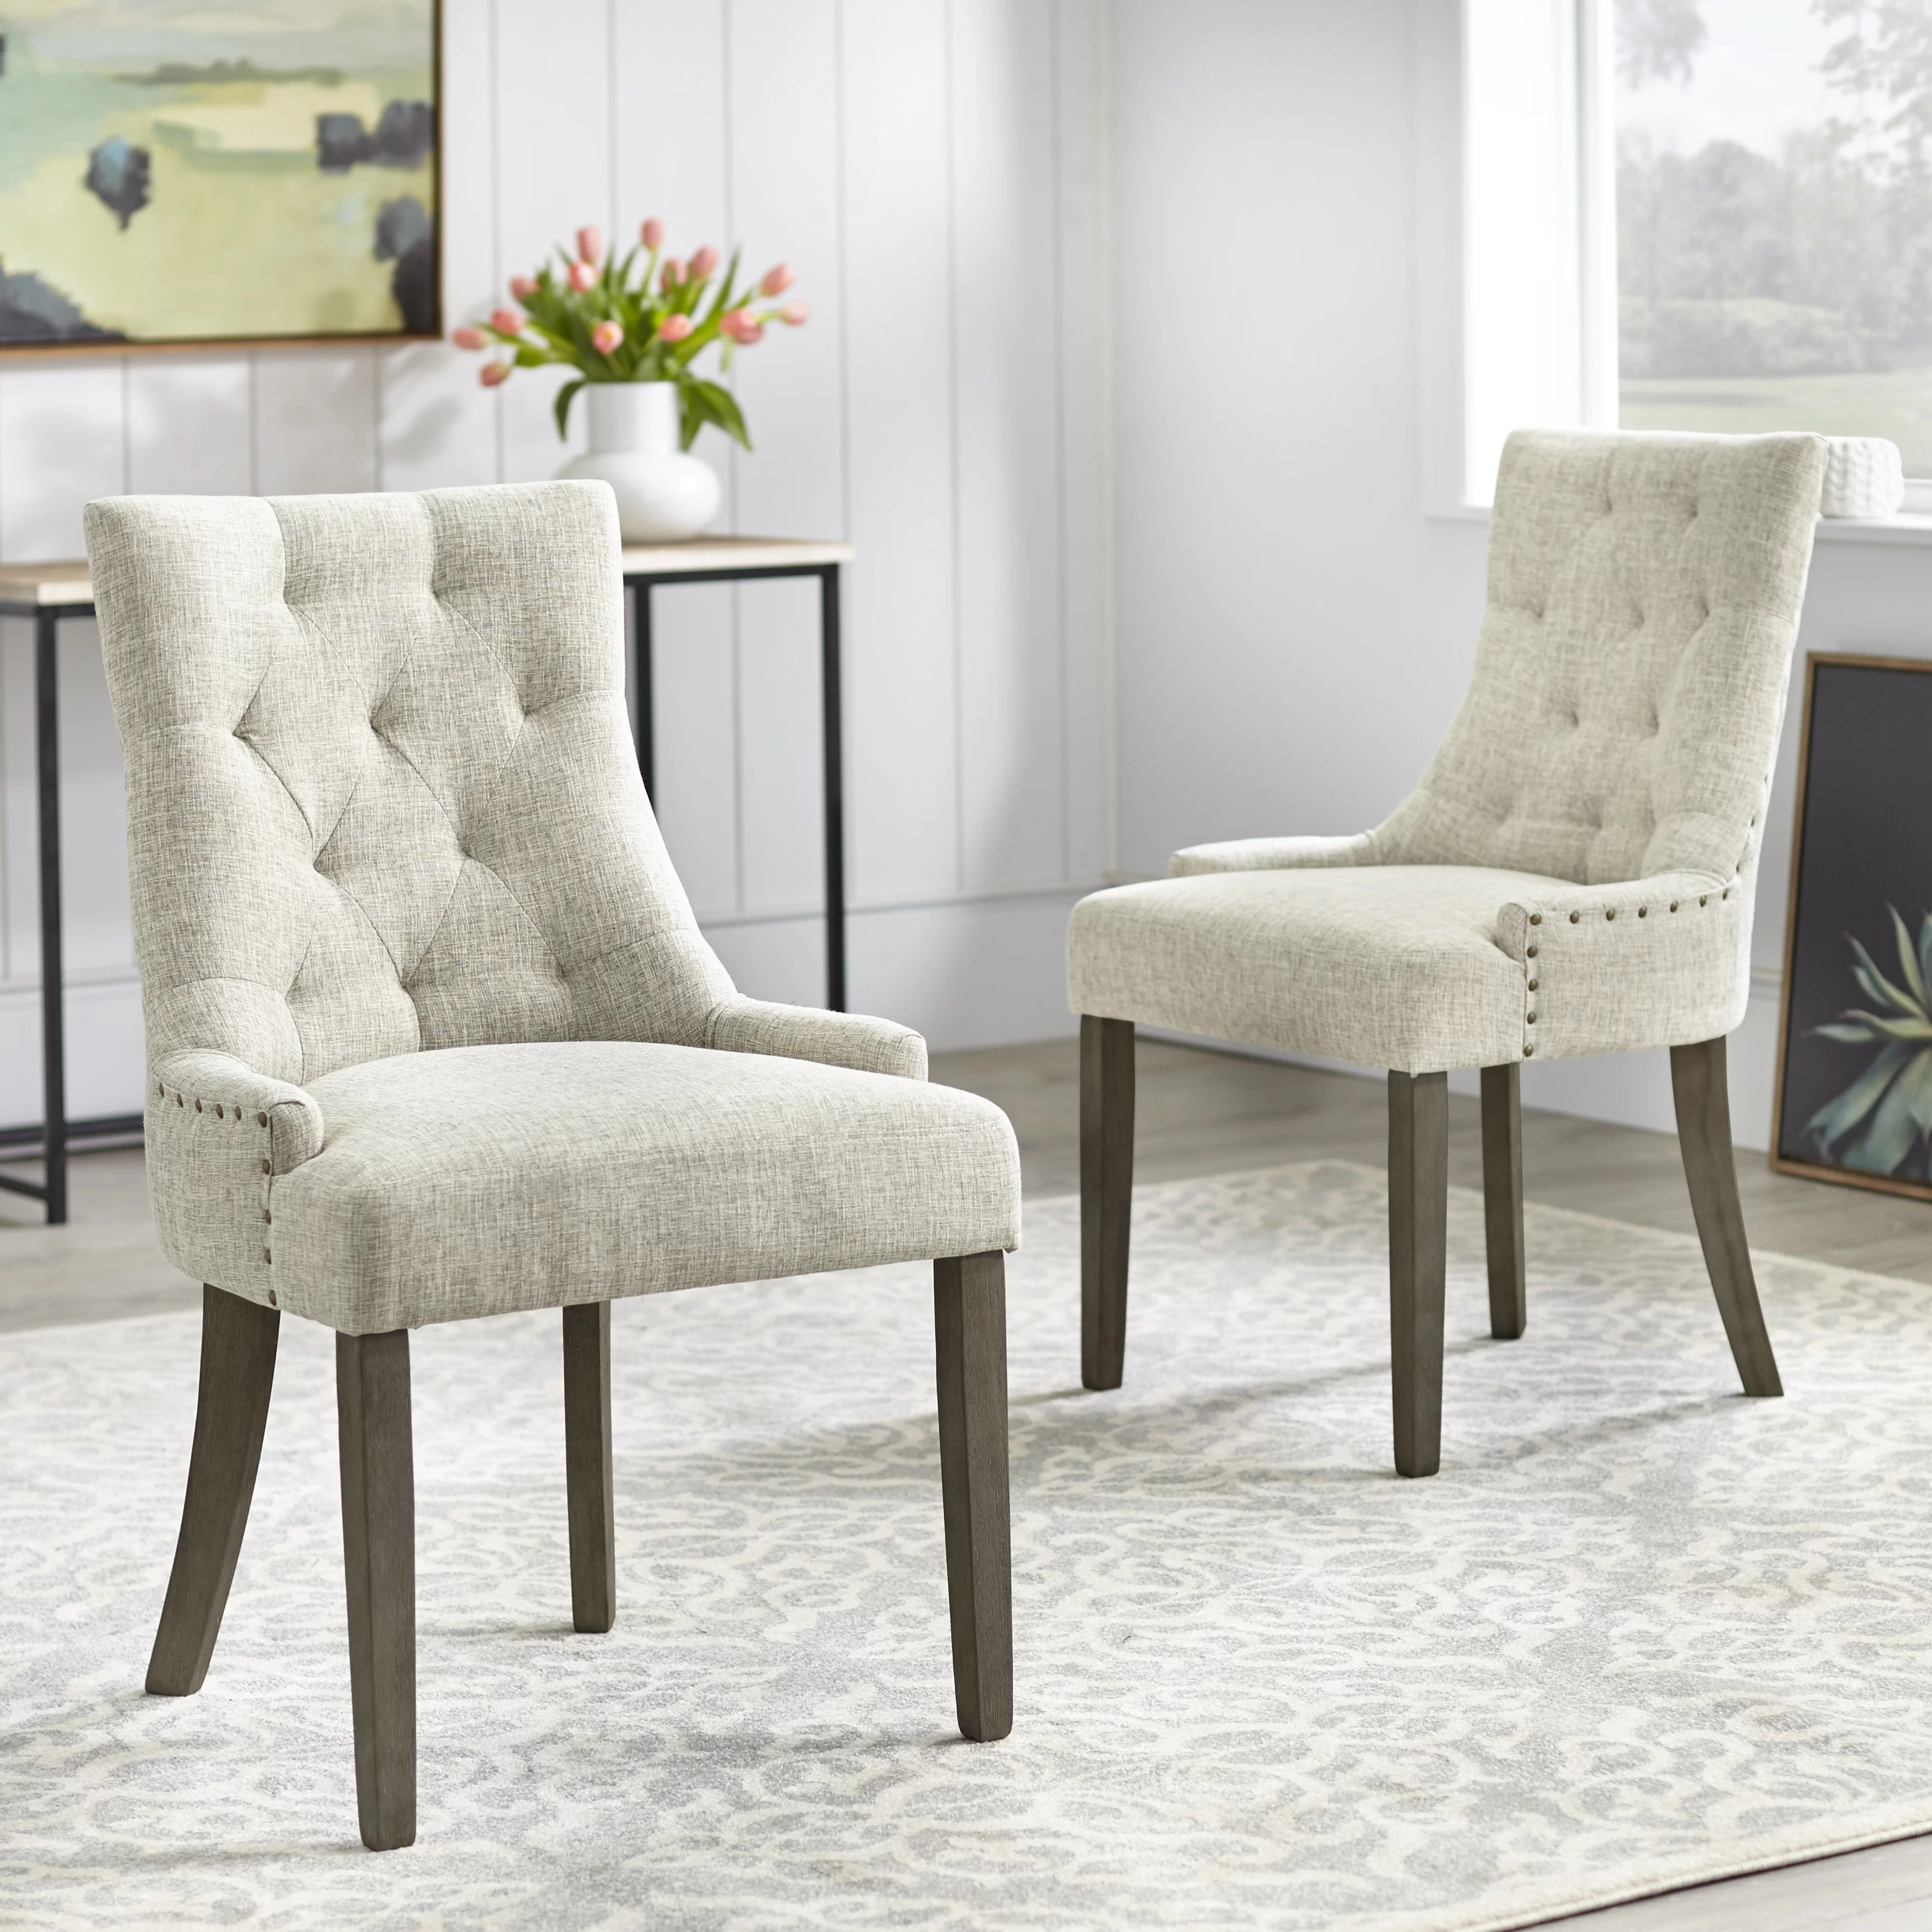 Wayfair Host Chairs Upholstered High Back Dining Chairs